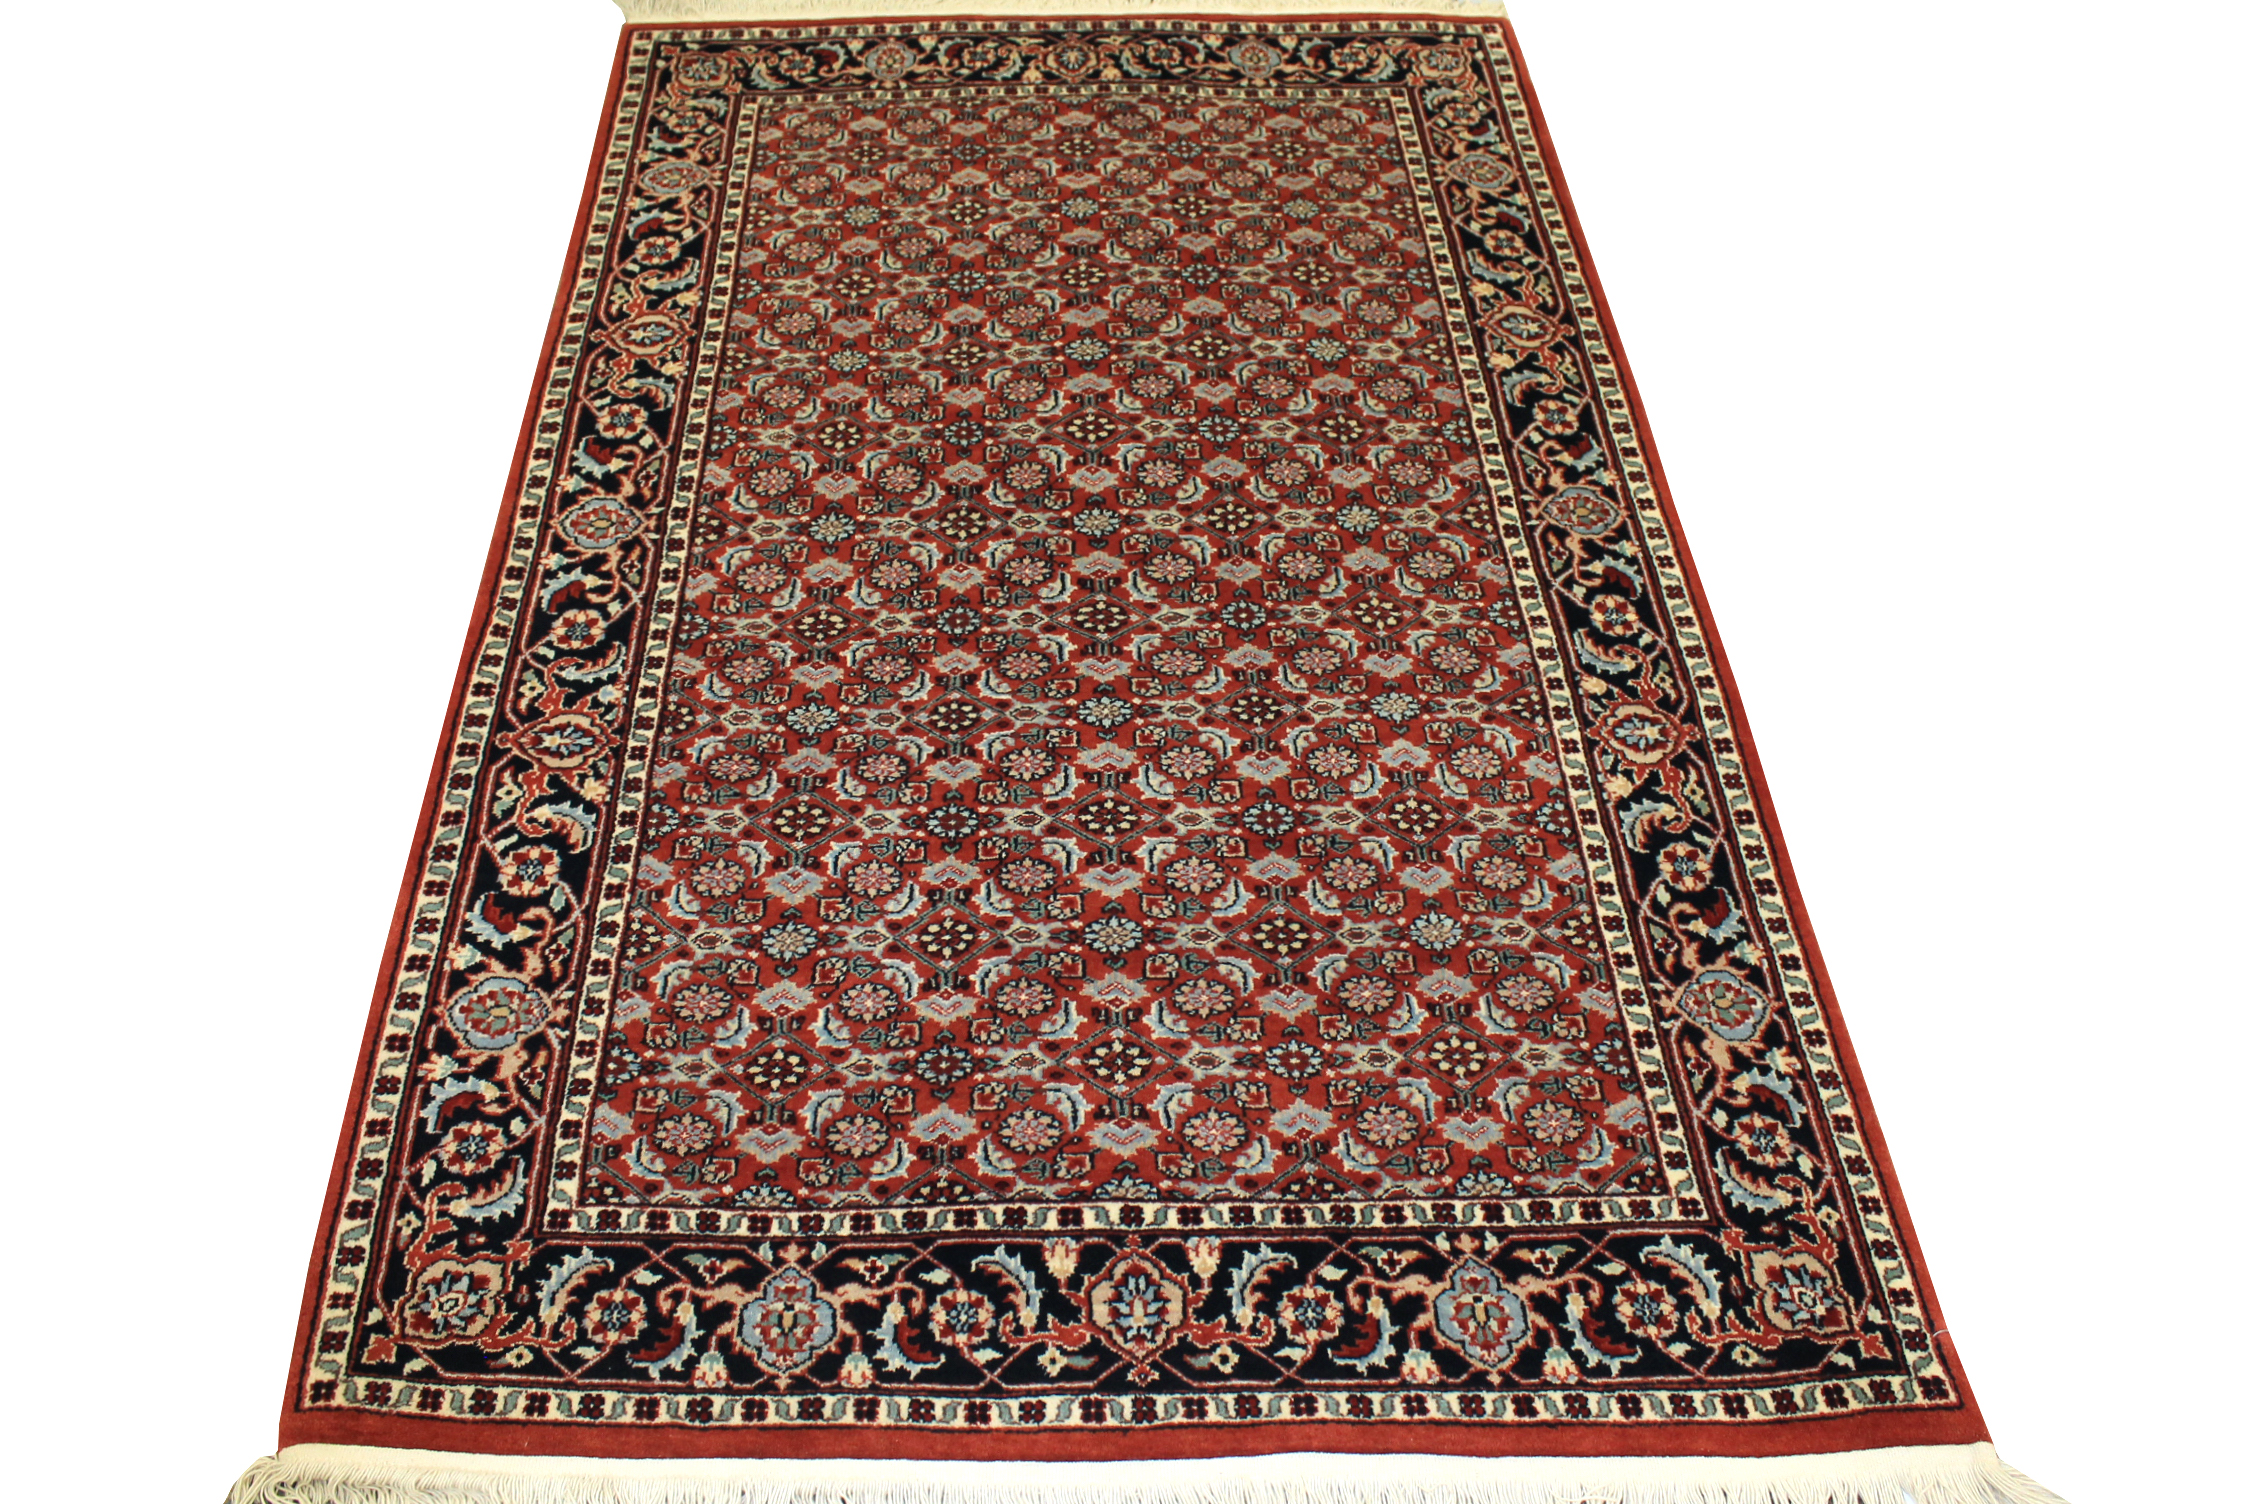 4x6 Traditional Hand Knotted Wool Area Rug - MR0701